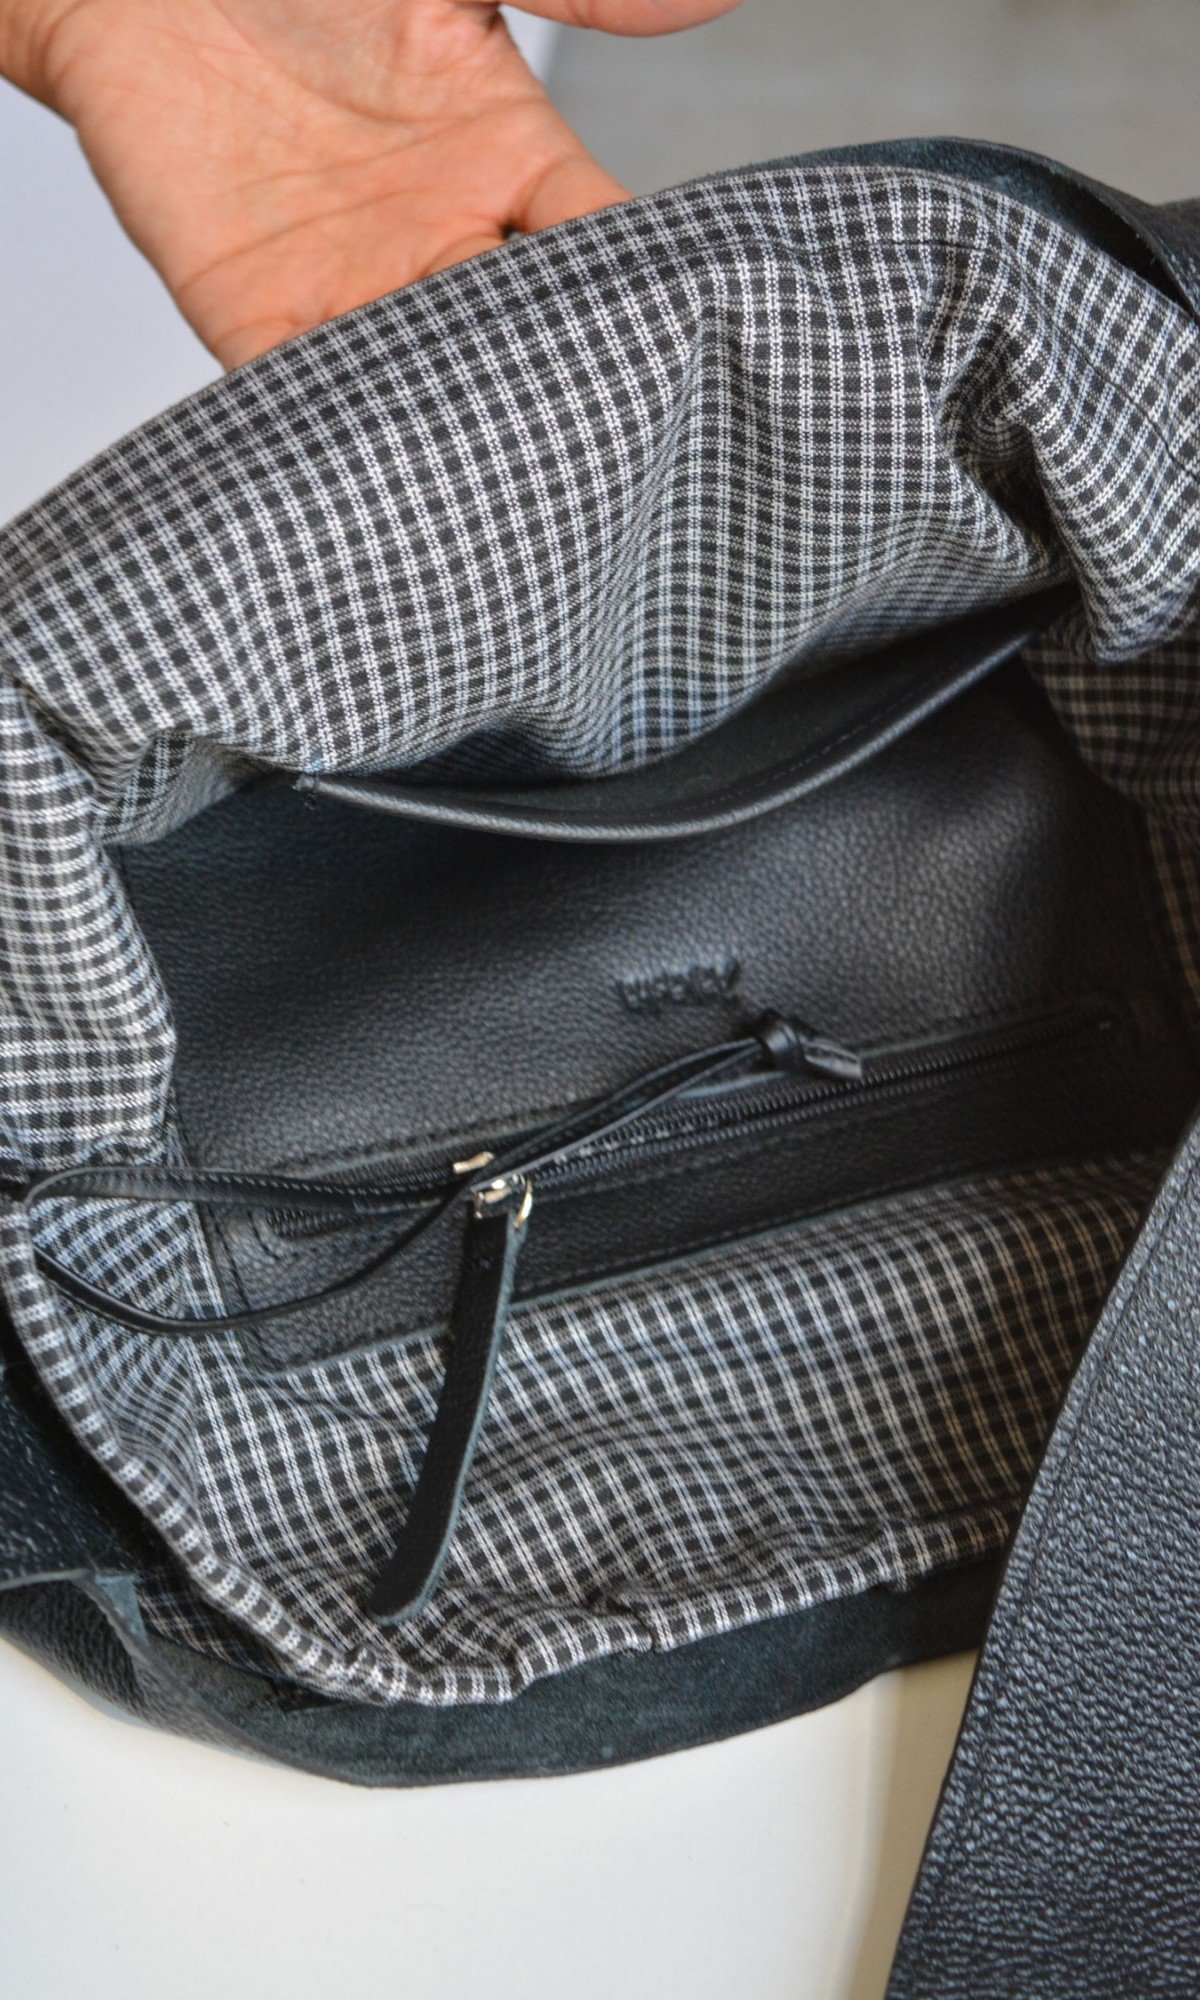 Large Extravagant Genuine Leather Bag A14724